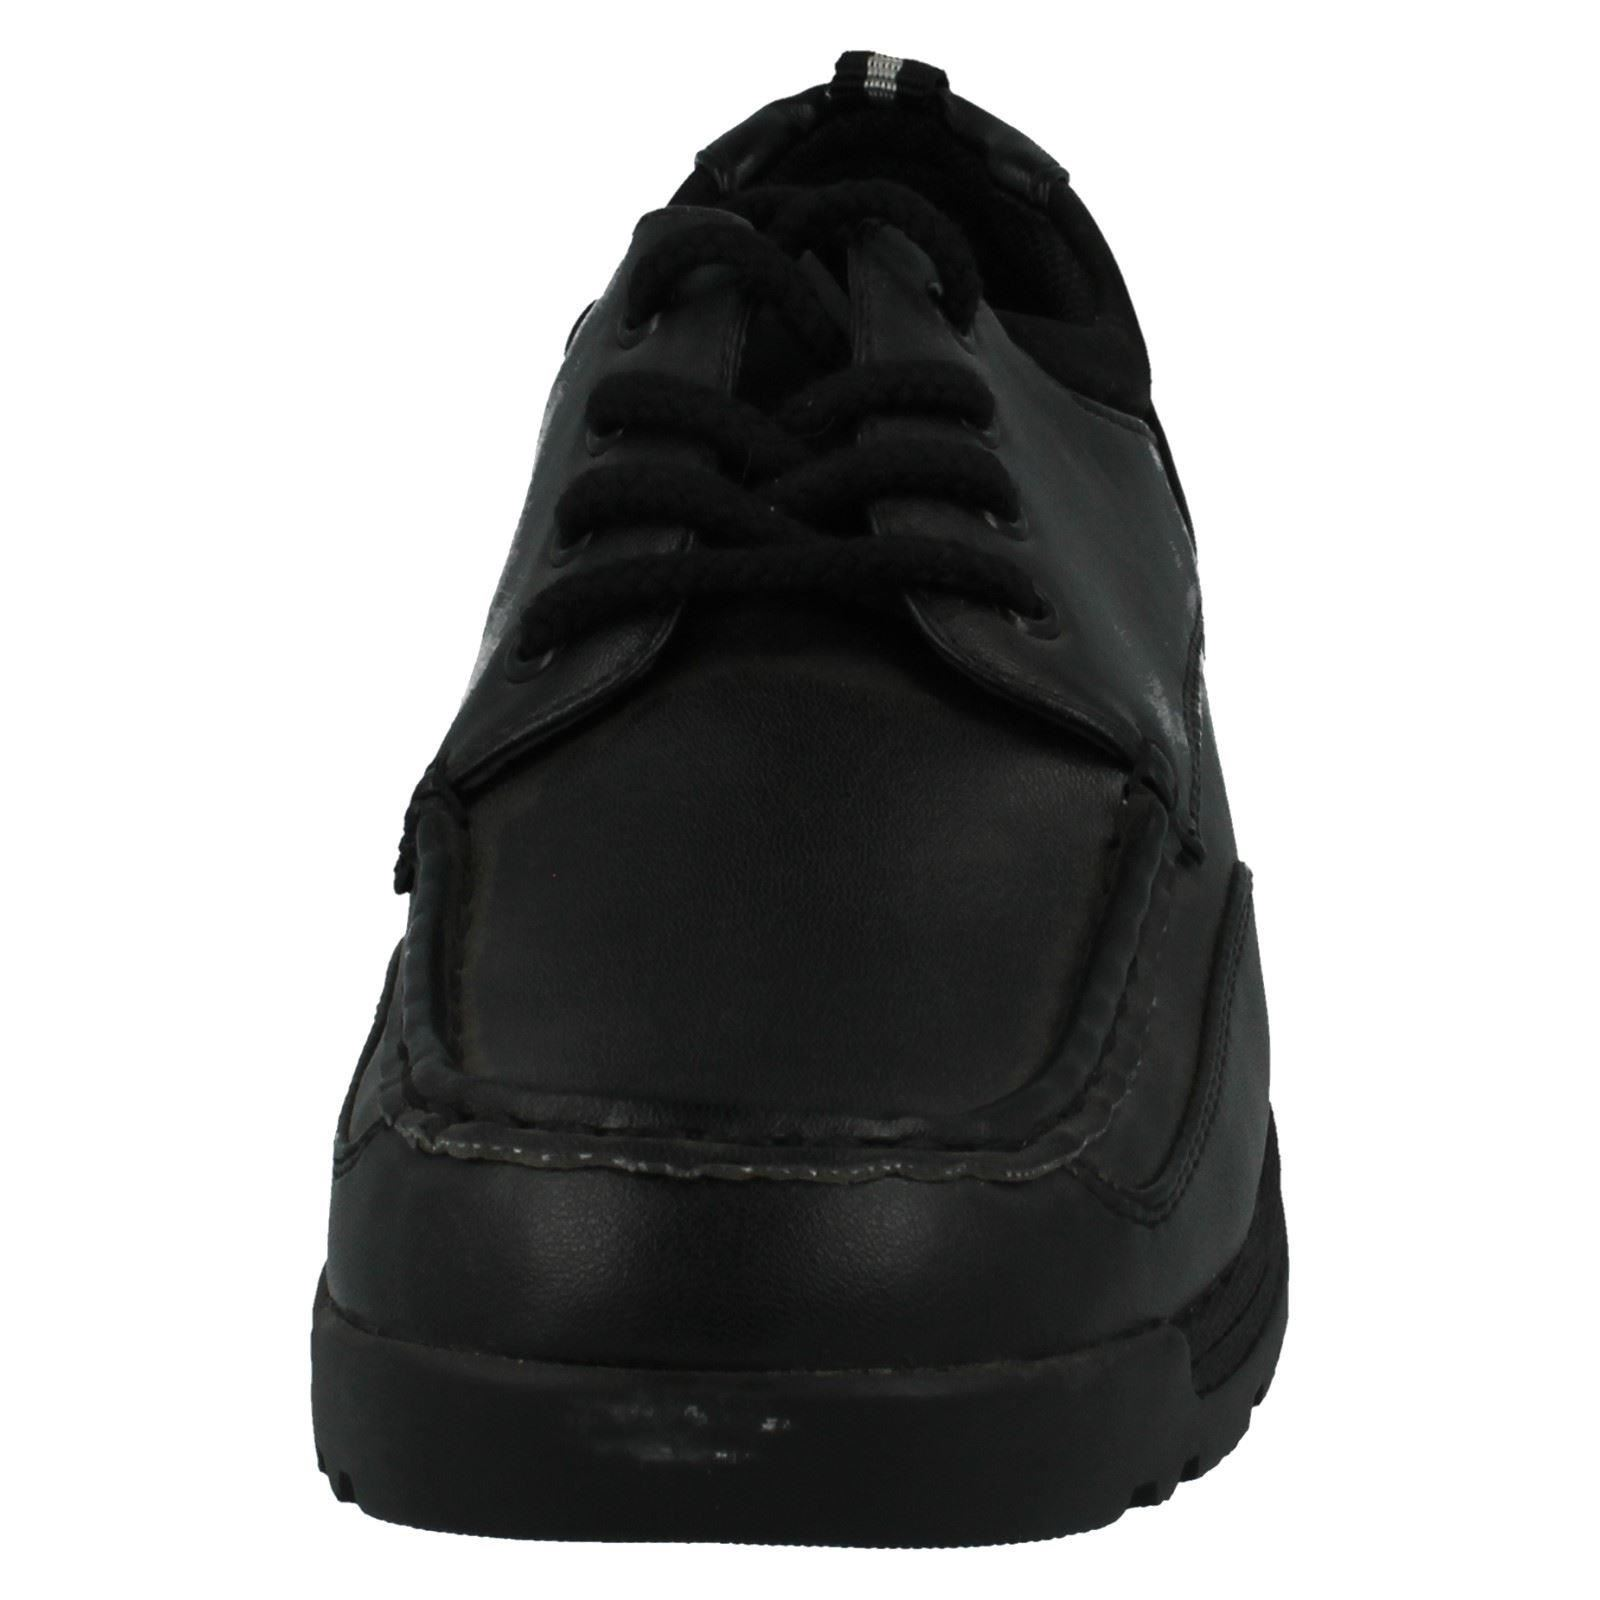 Boys Spot On Shoes N1002